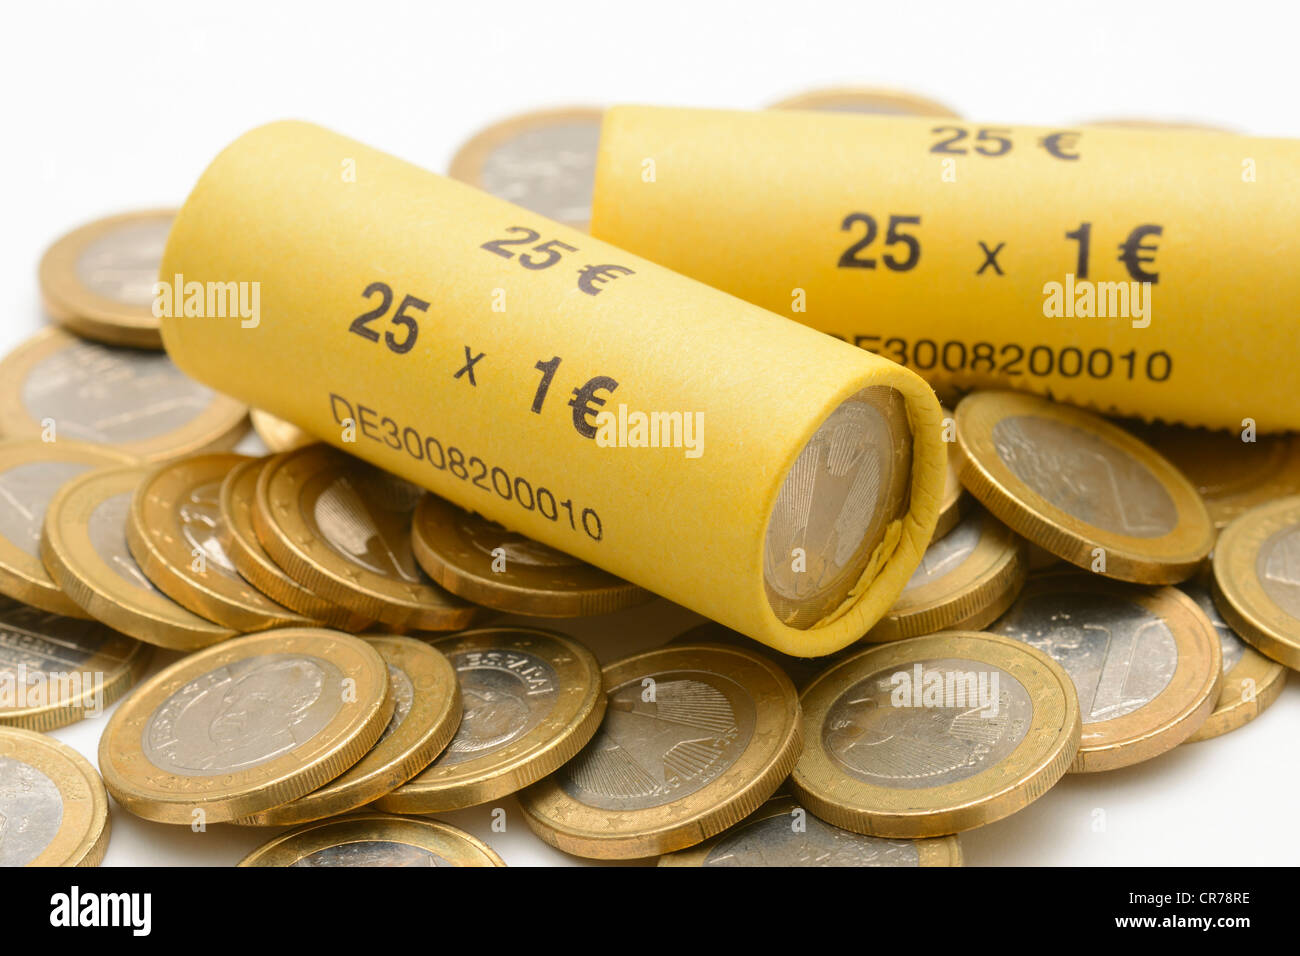 1-Euro coins, rolled up and loose coins - Stock Image